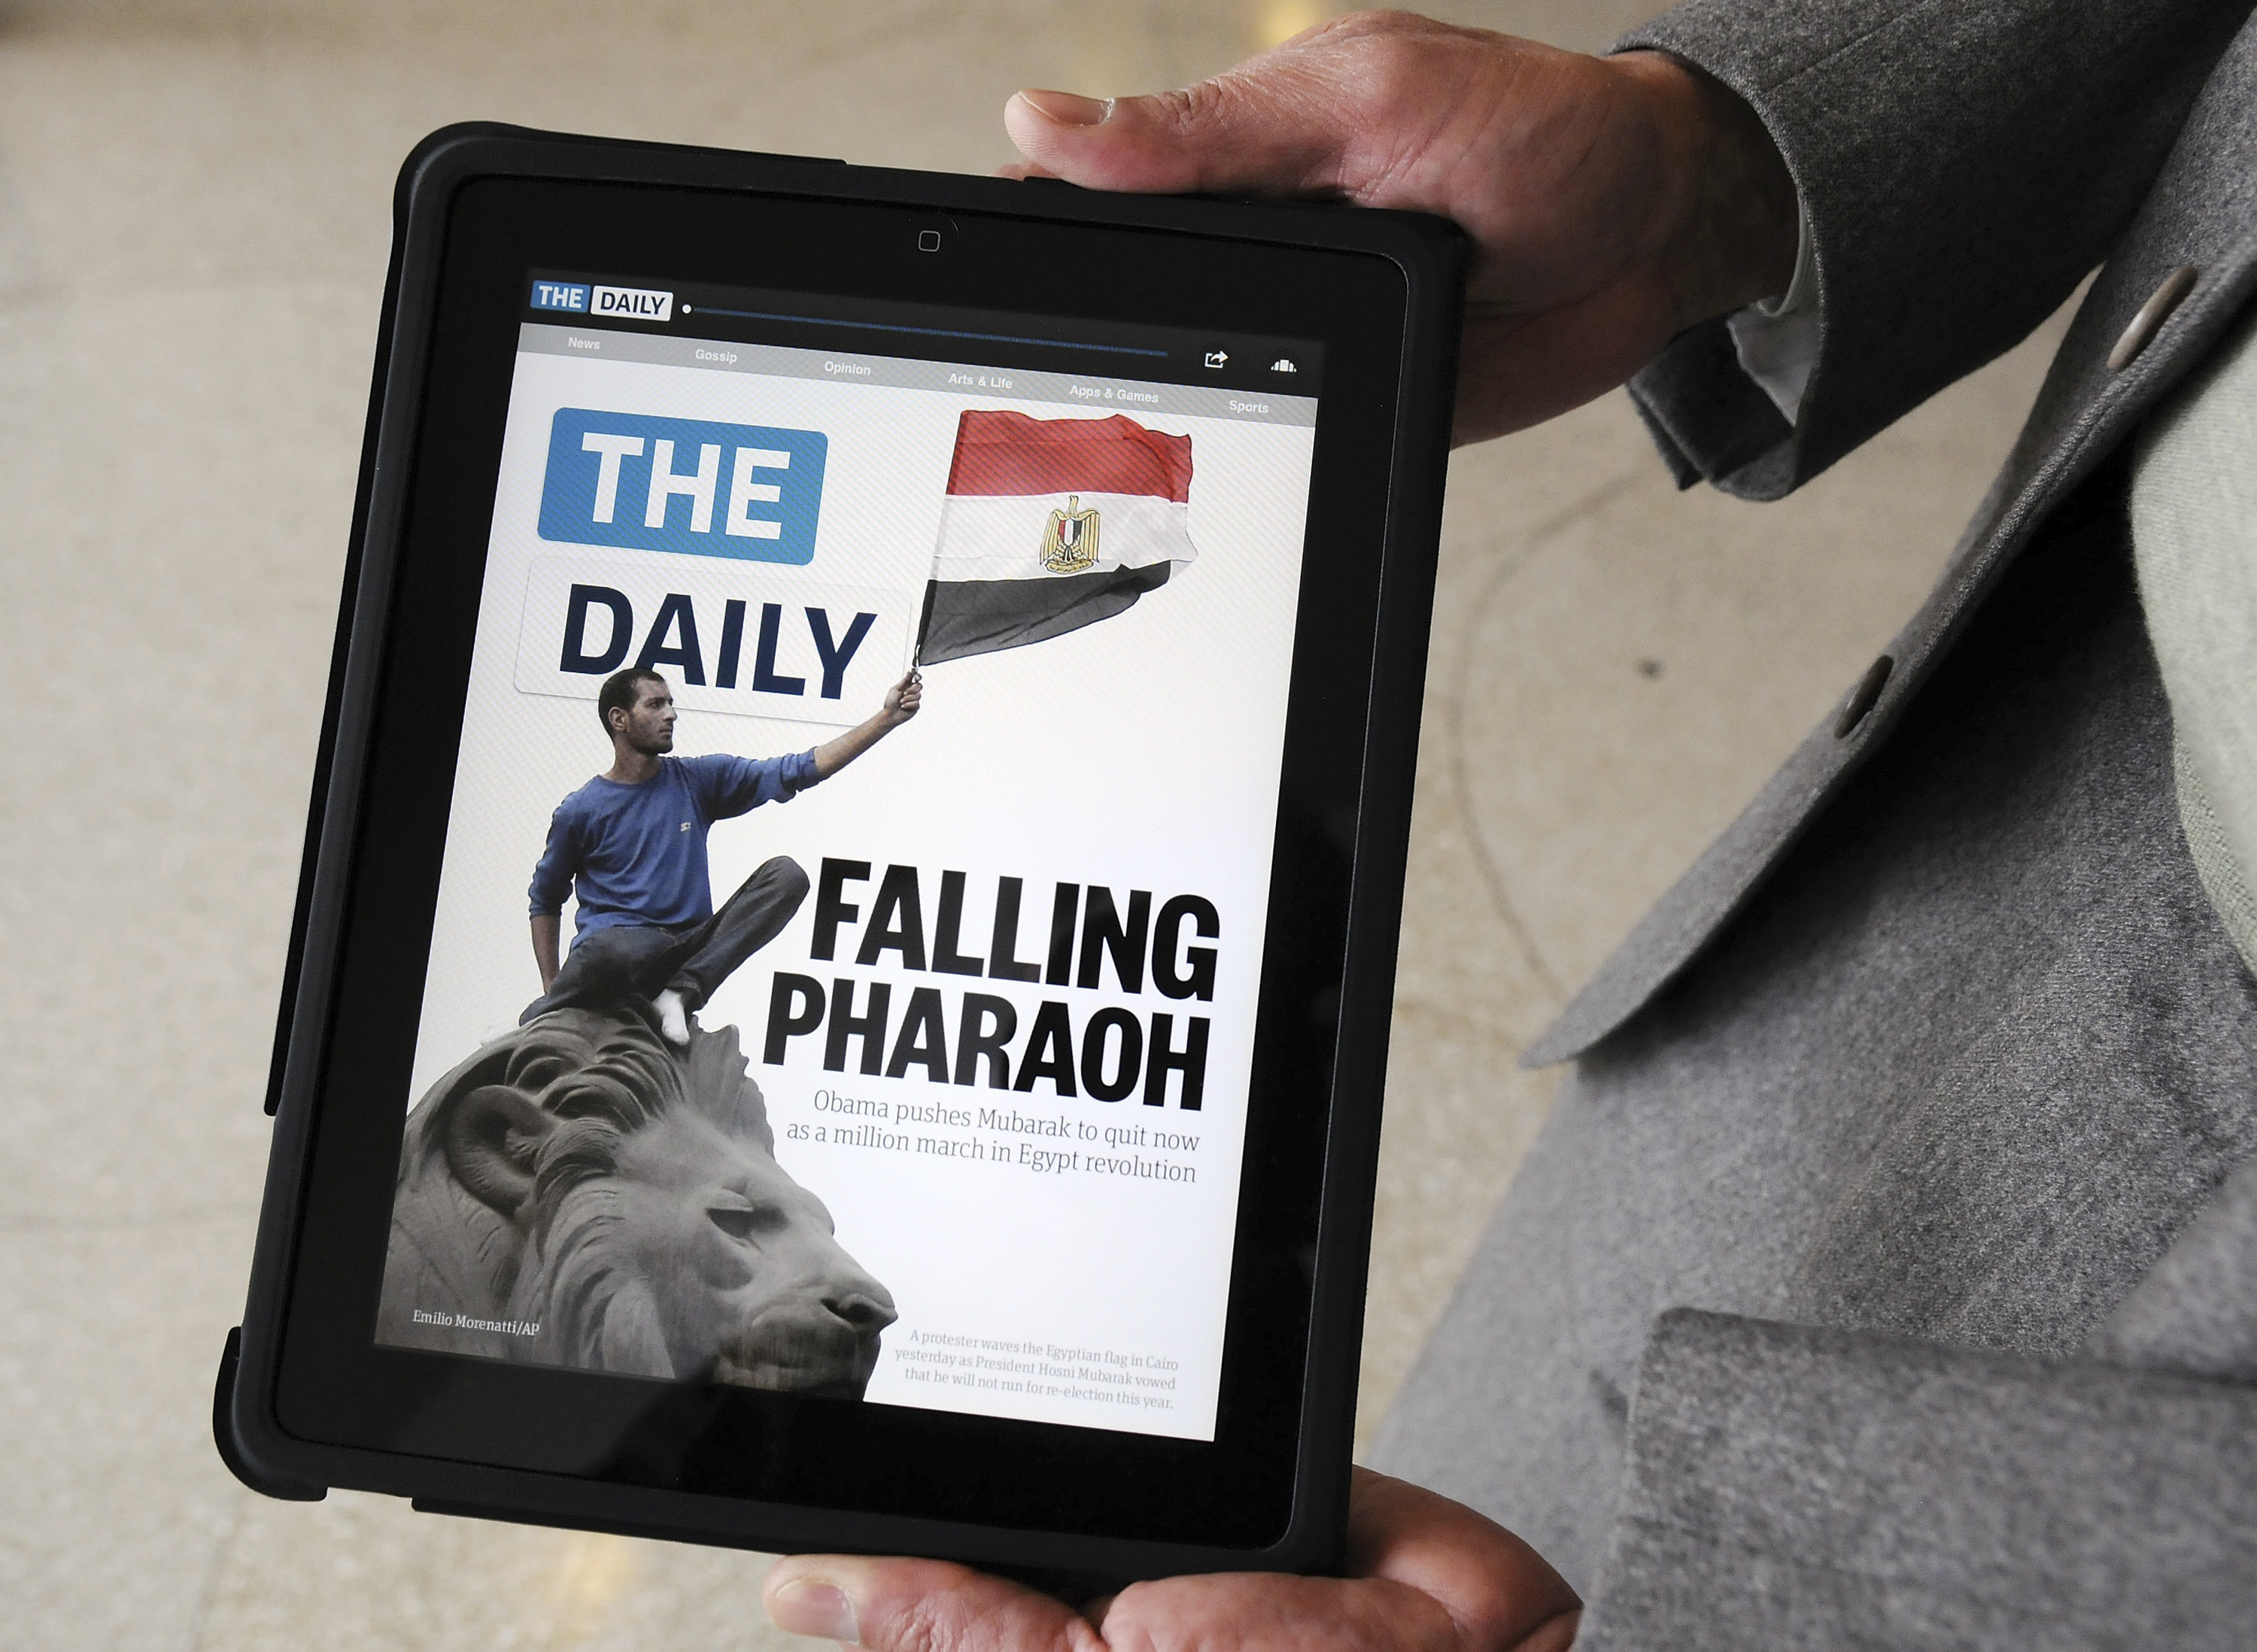 News Corp. Unwraps Daily Digital Publication For Apple's Ipad